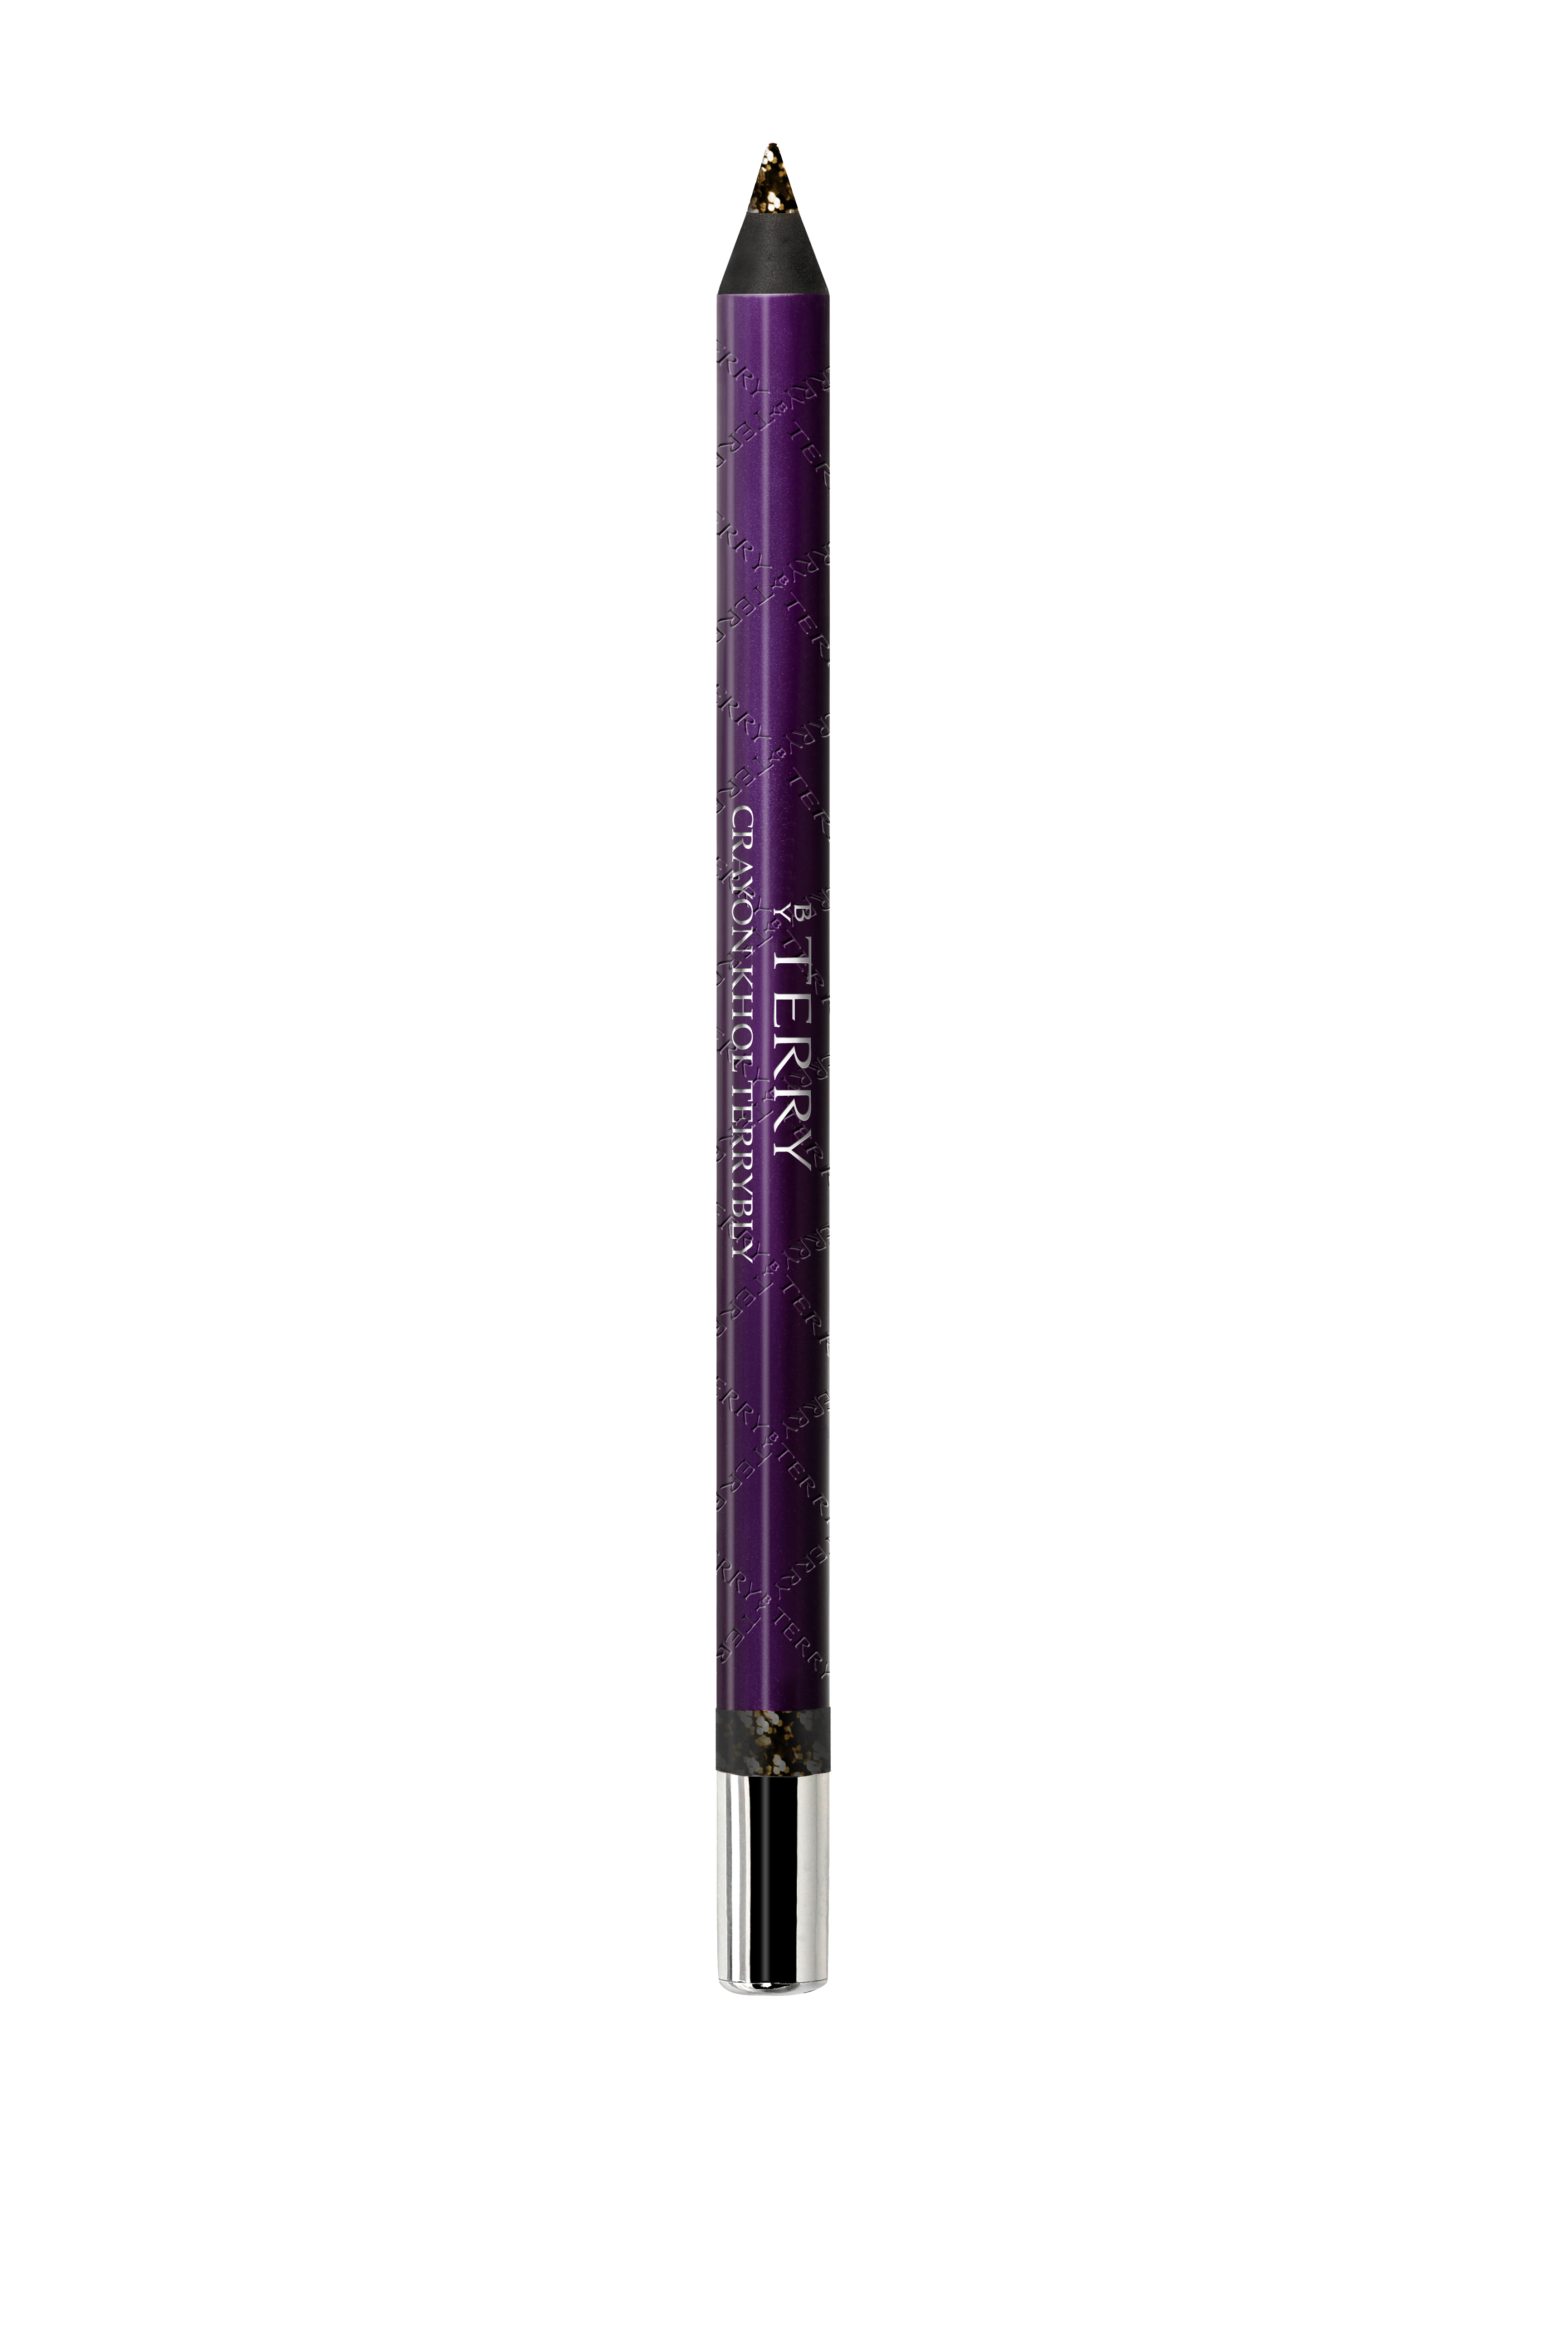 By Terry Crayon Khol Terrybly Colour Eye Pencil in Holy Black